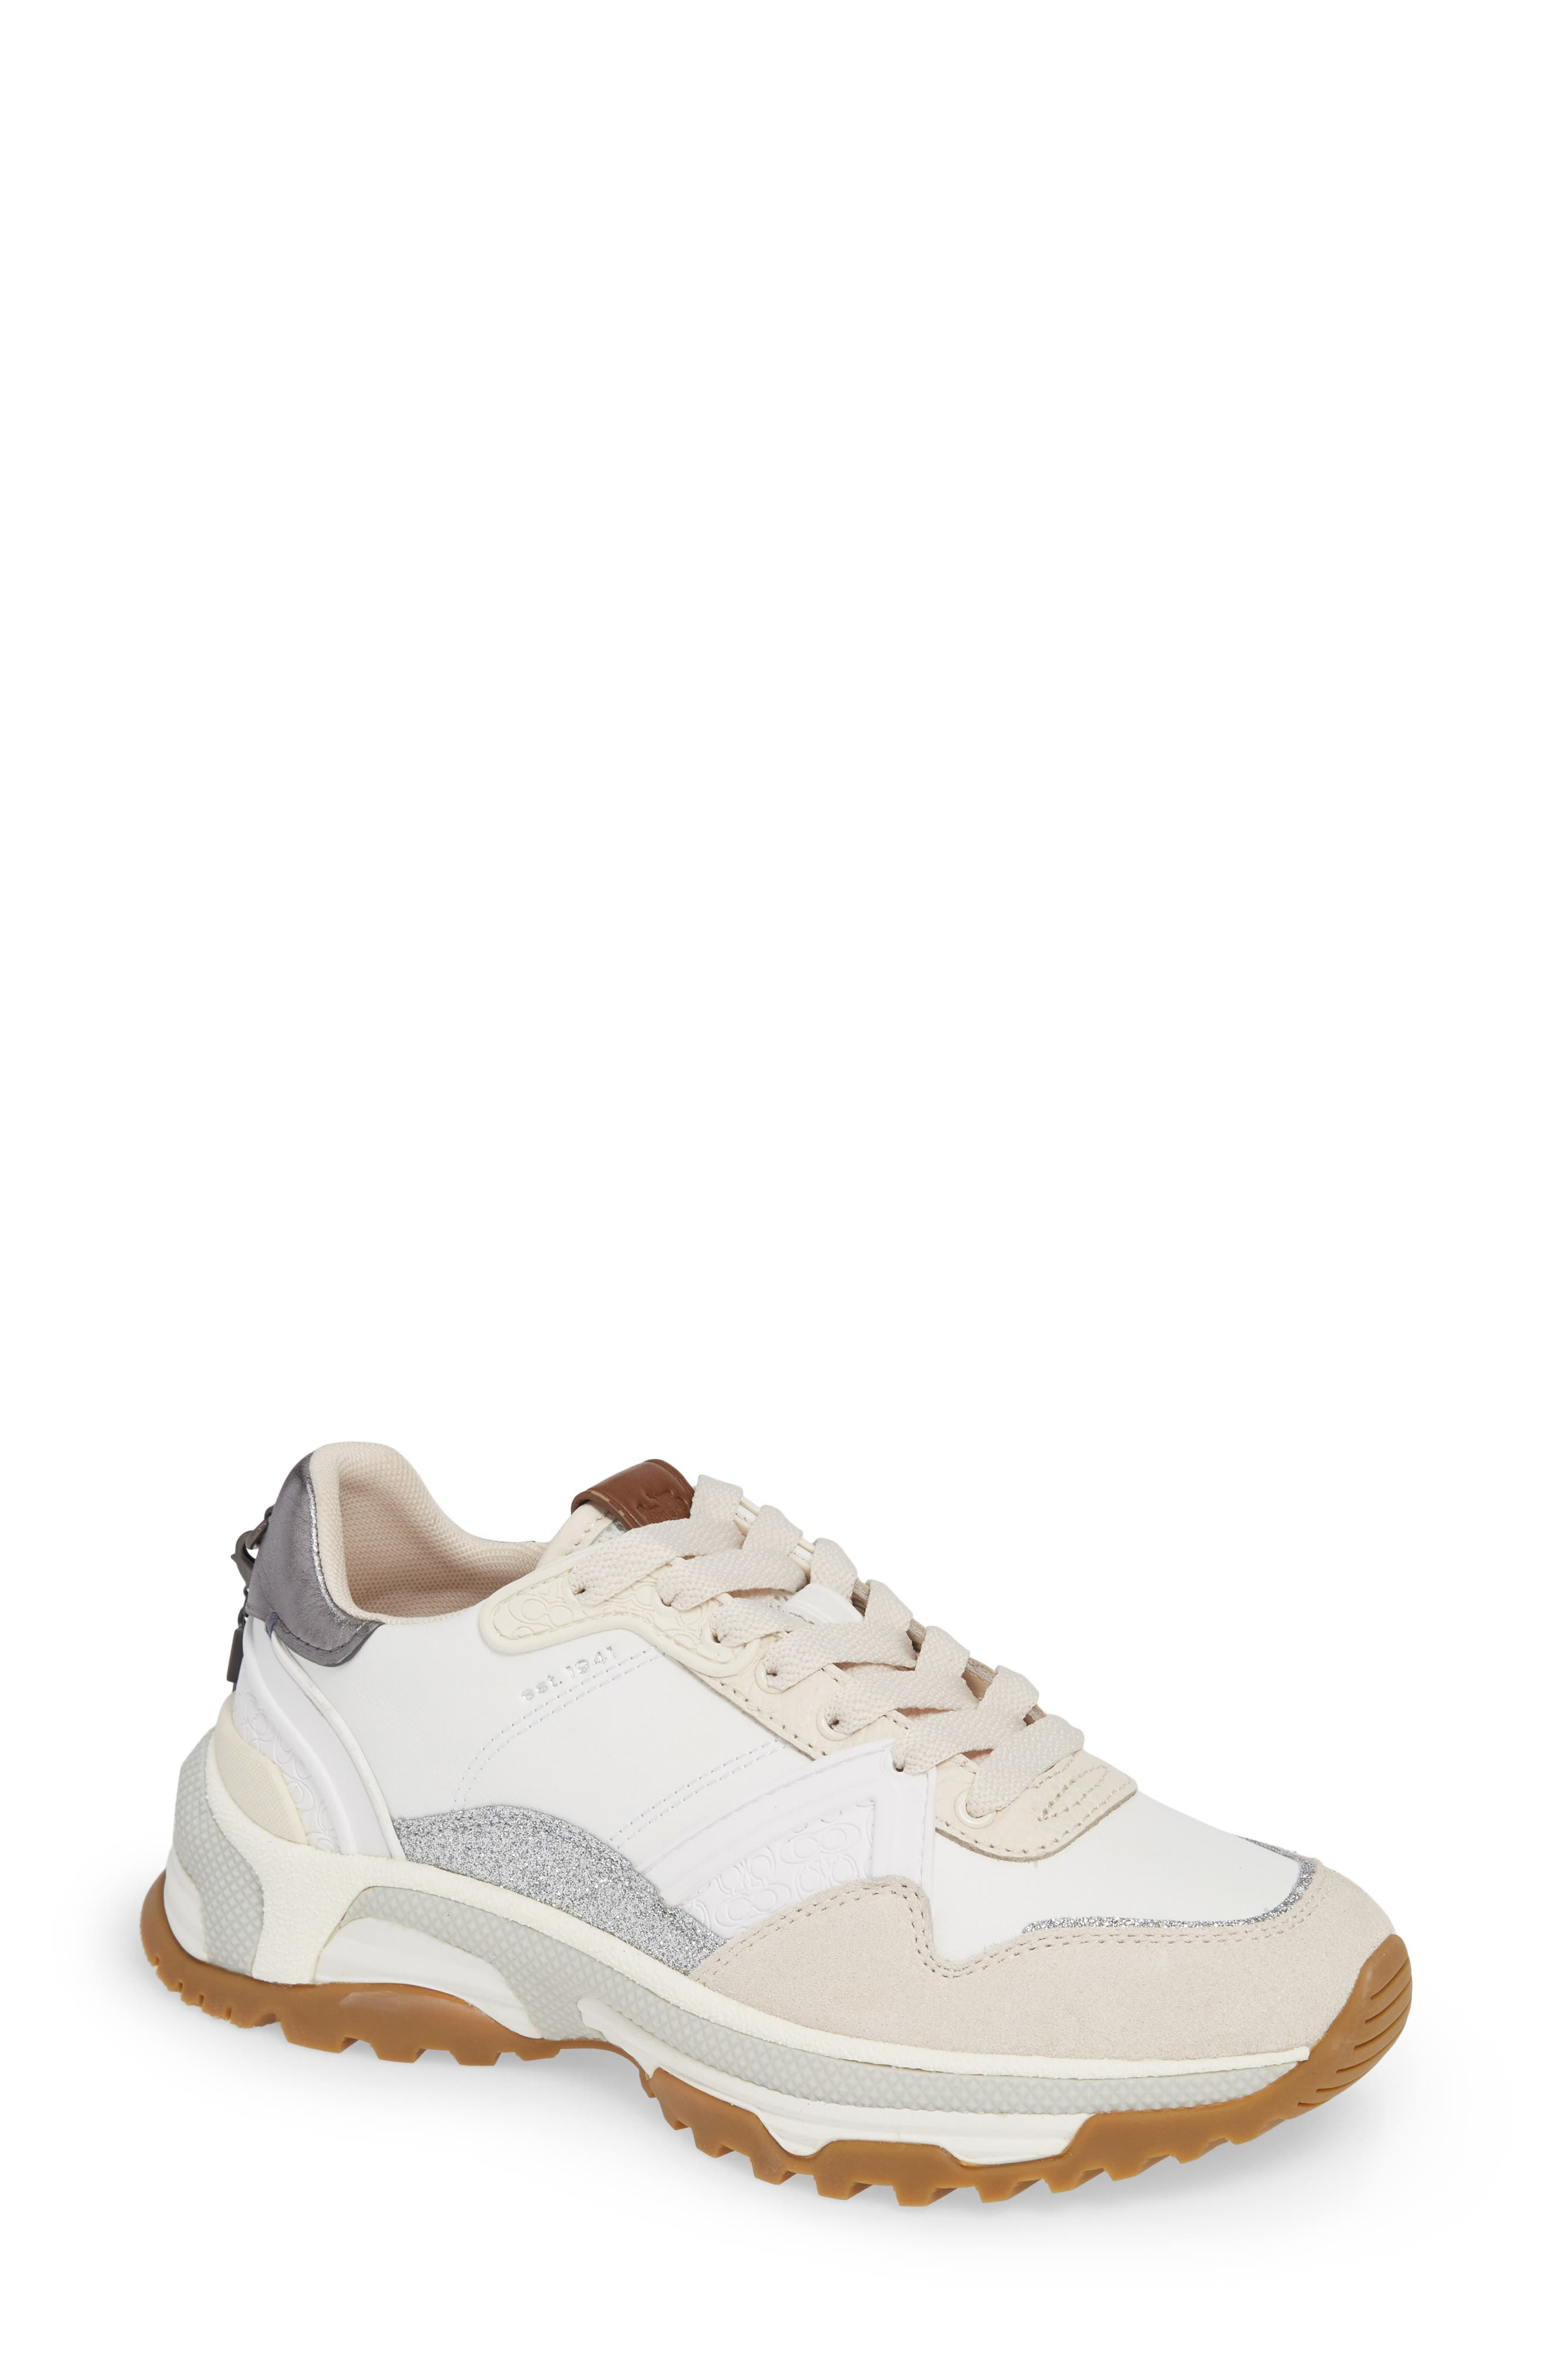 GLT Sneaker,                         Main,                         color, WHITE LEATHER/ SUEDE